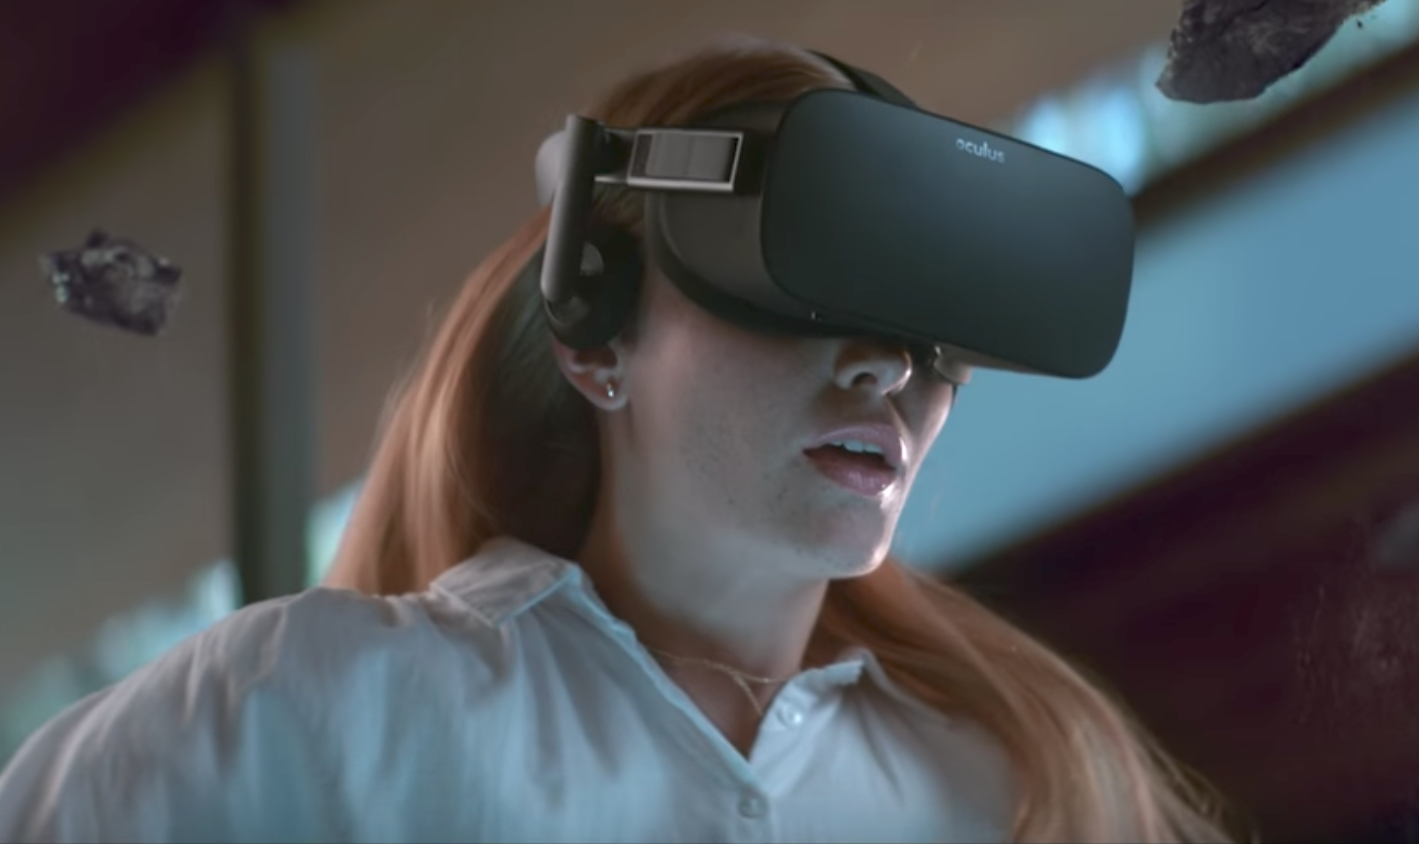 Oculus implements its own GDPR-compliant privacy controls